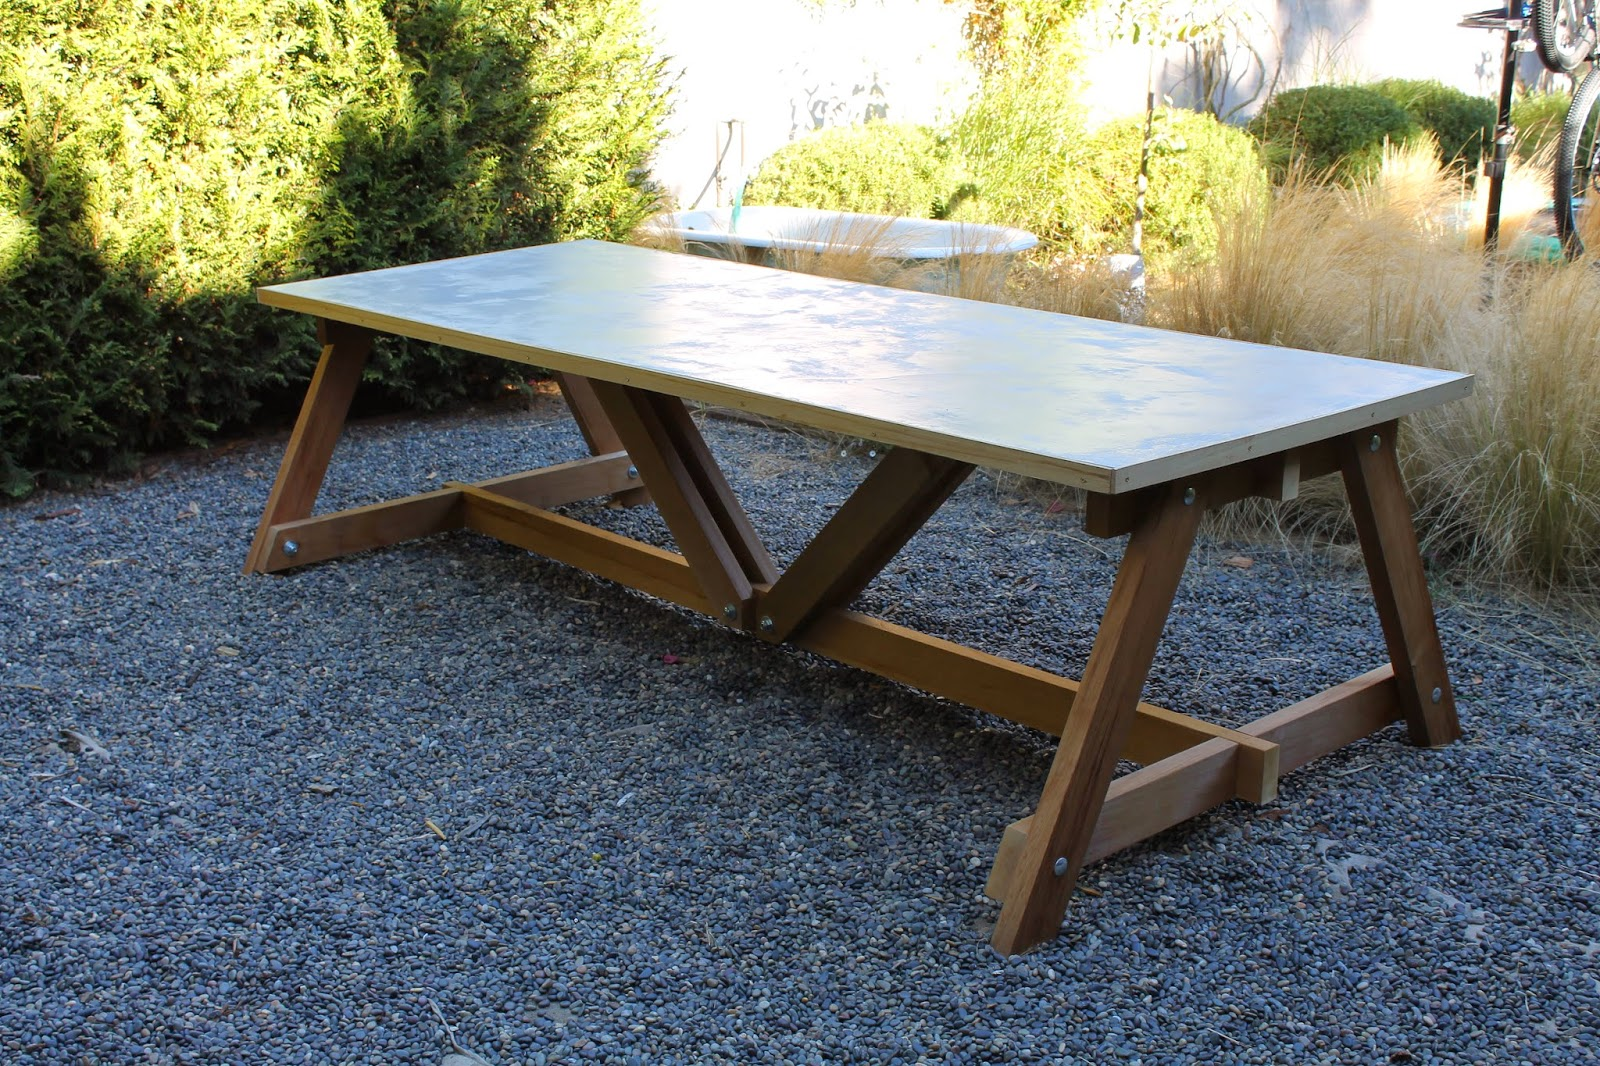 How To Build A Picnic Table: Part Two